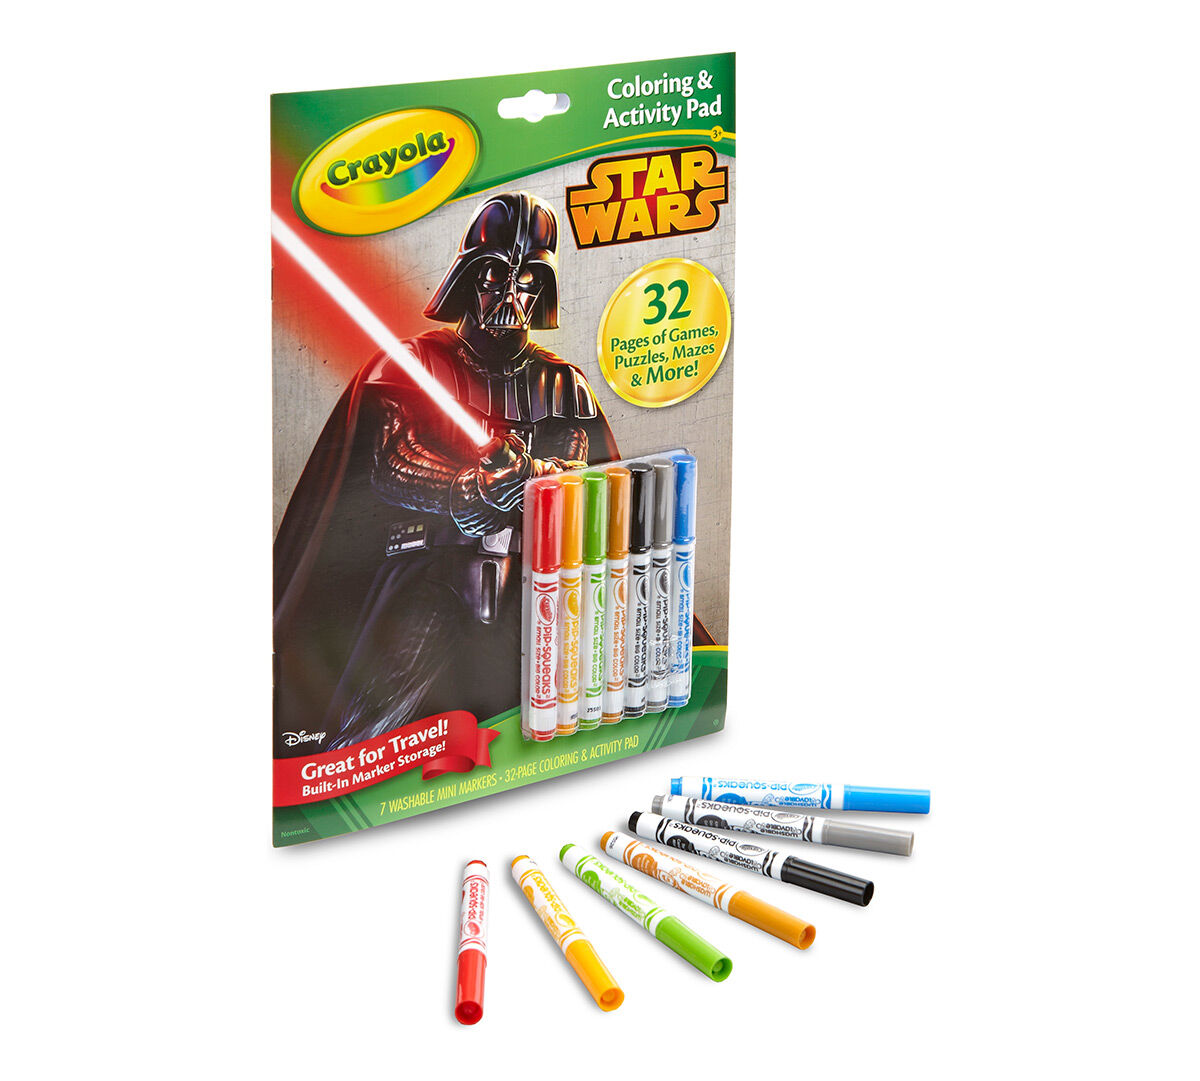 crayola coloring activity pad star wars